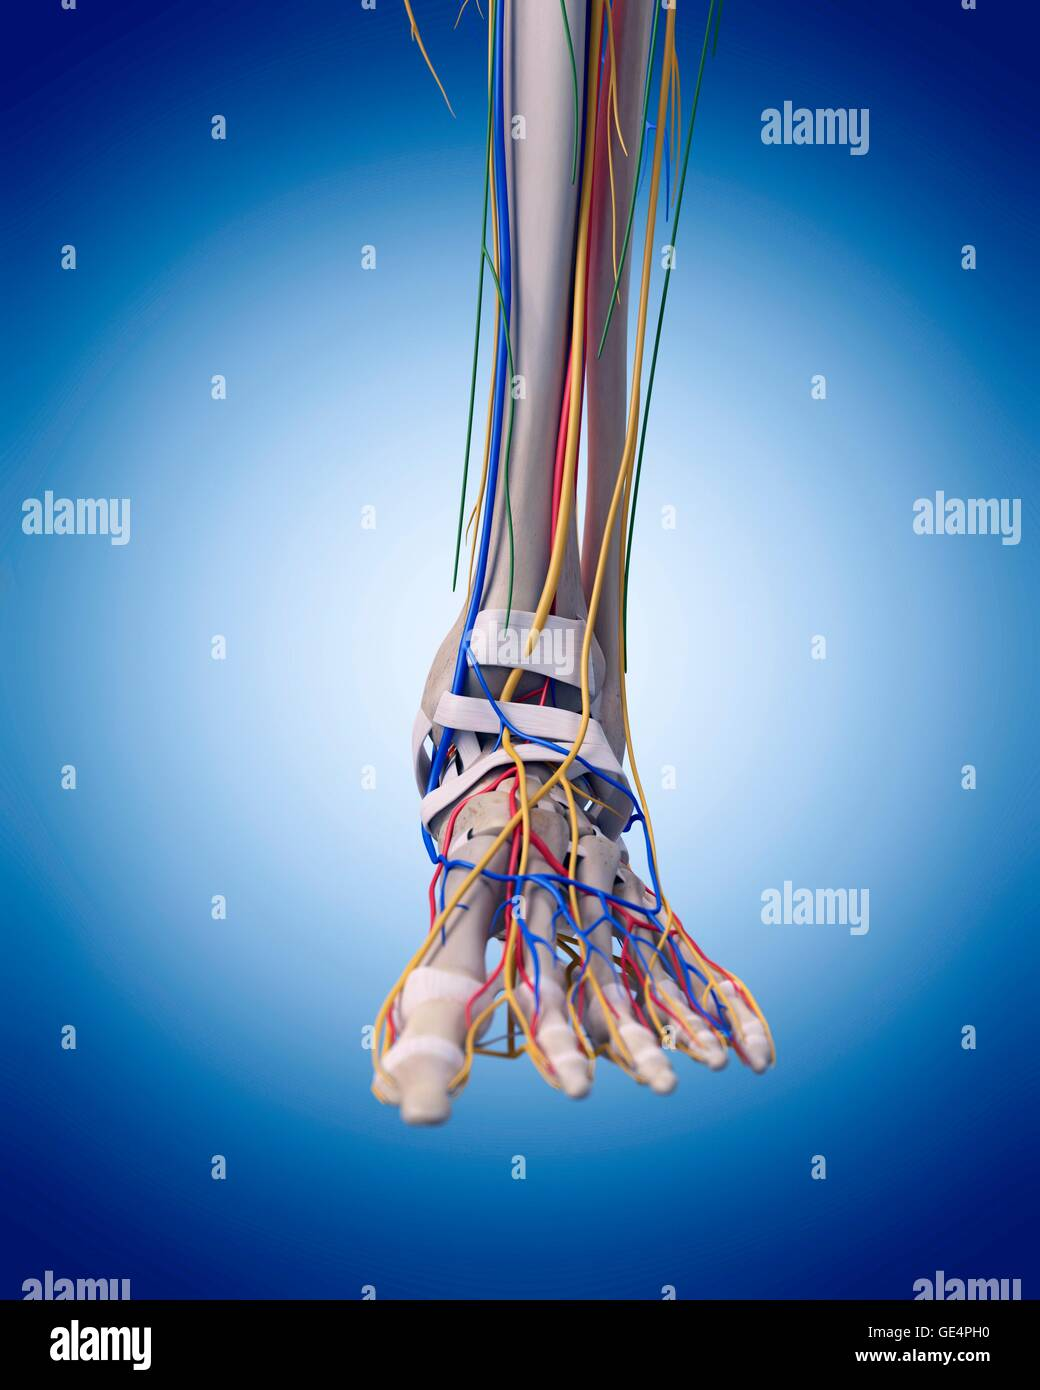 Nerves Foot Stock Photos & Nerves Foot Stock Images - Alamy